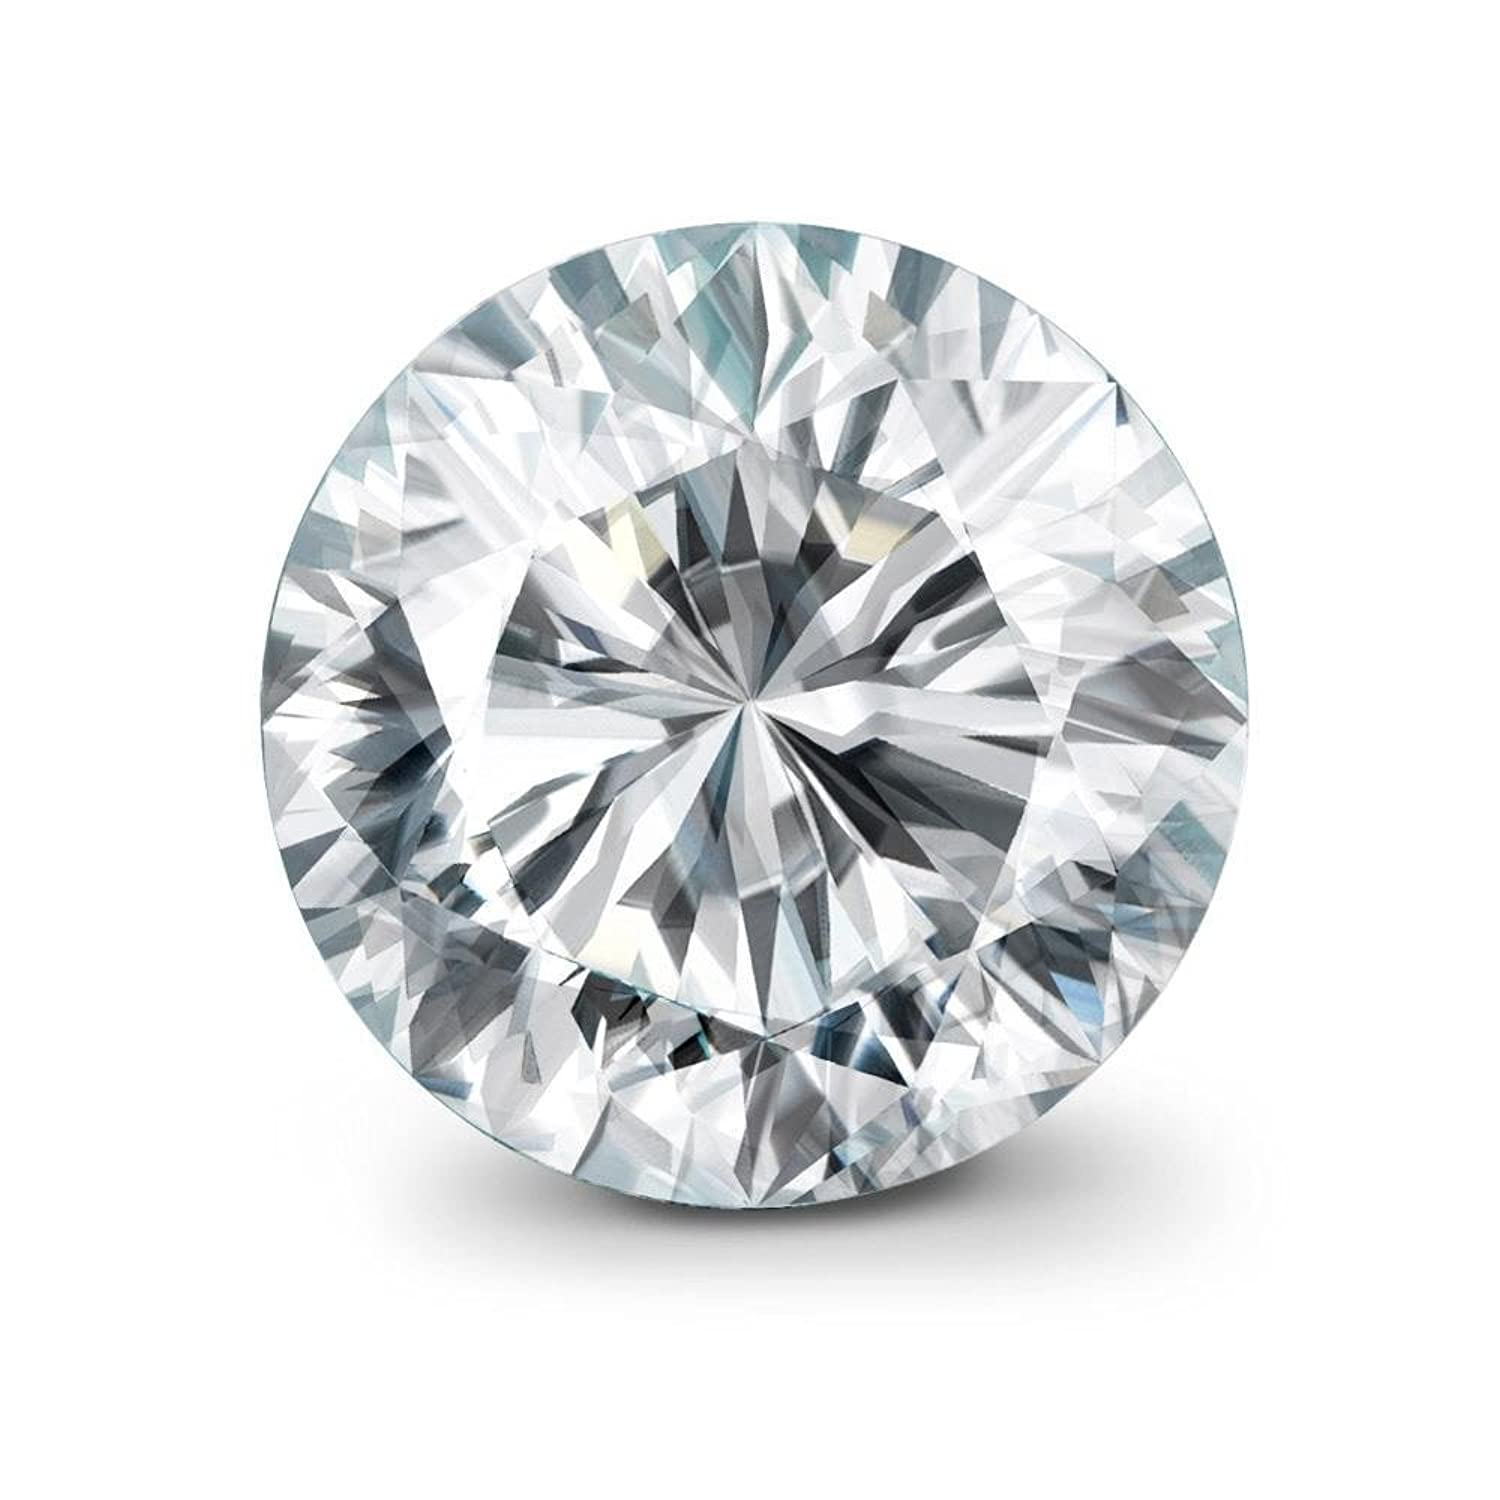 maximise have teardrop diamonds to diamond table blend an now these en guide are round outstanding a the choice and bewitching forever forevermark cut guides engagement of shape marquise striking form pear